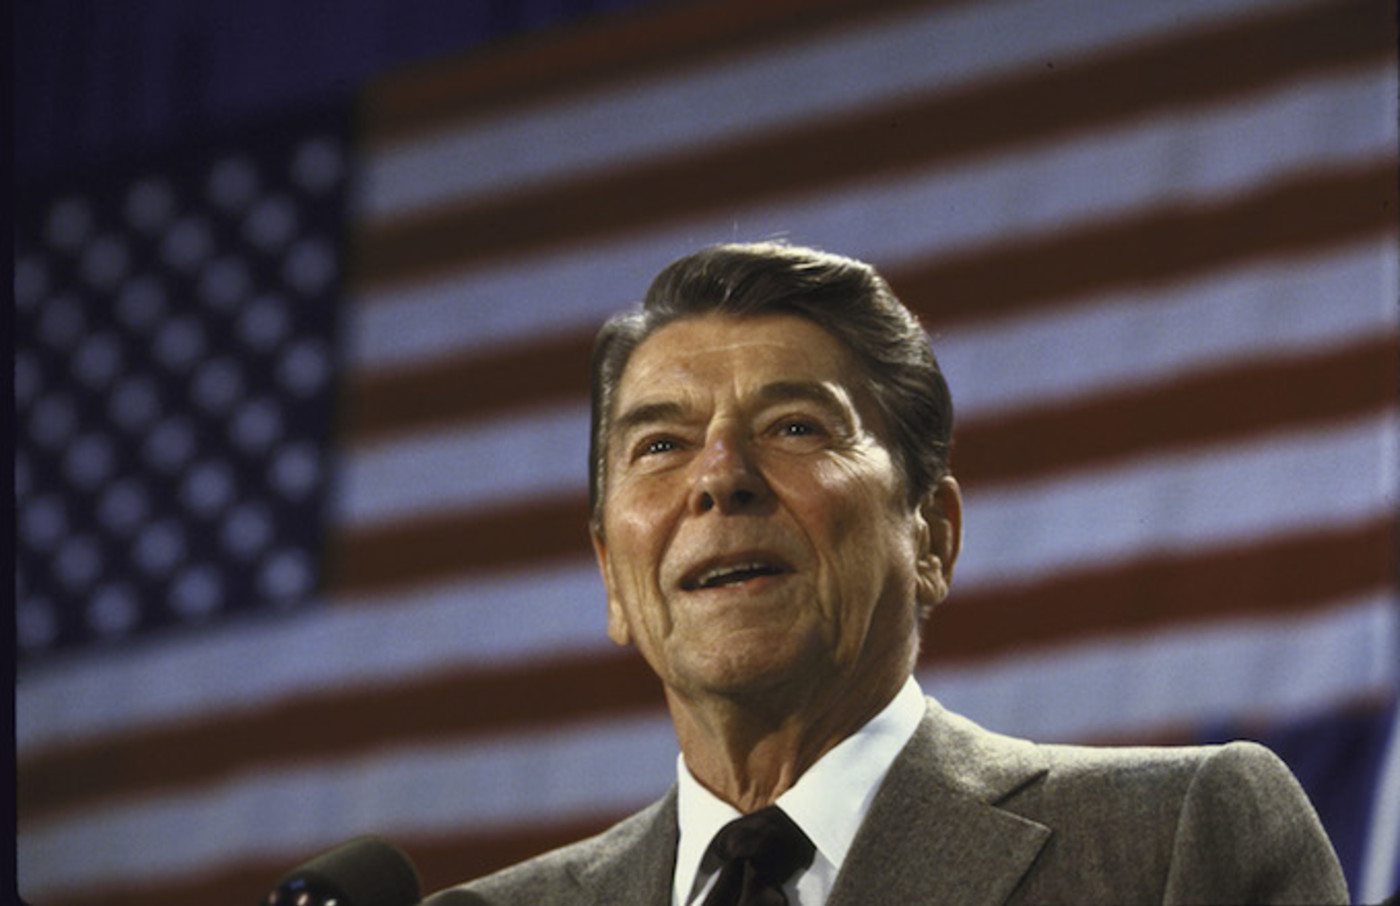 Ronald W. Reagan speaking at a fundraiser for Senate Candidate Linda Chavez's campaign.